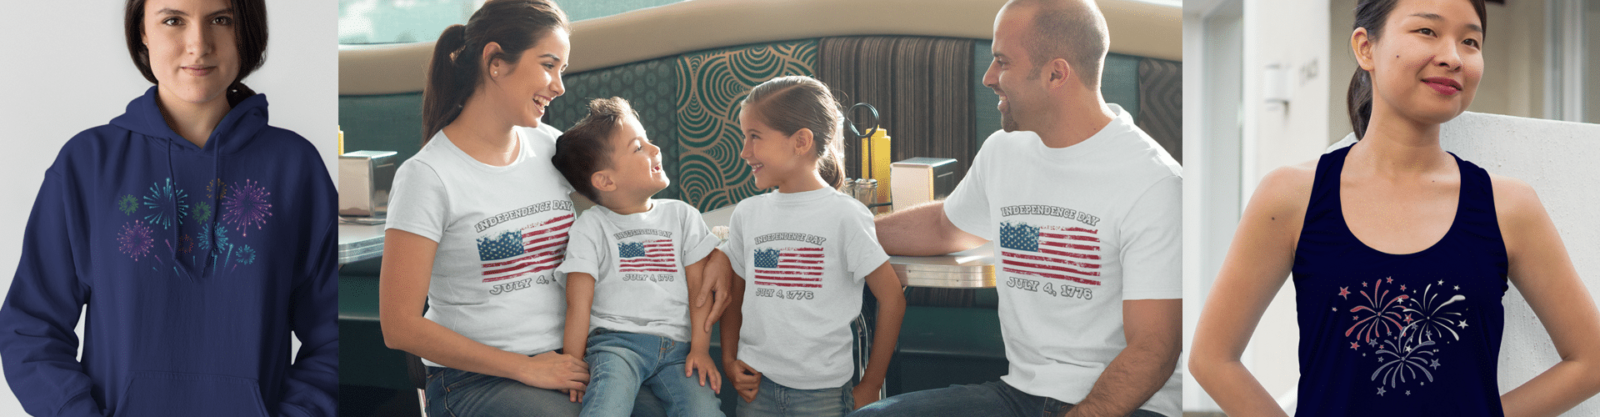 Patriotic Independence Day American Flag Apparel